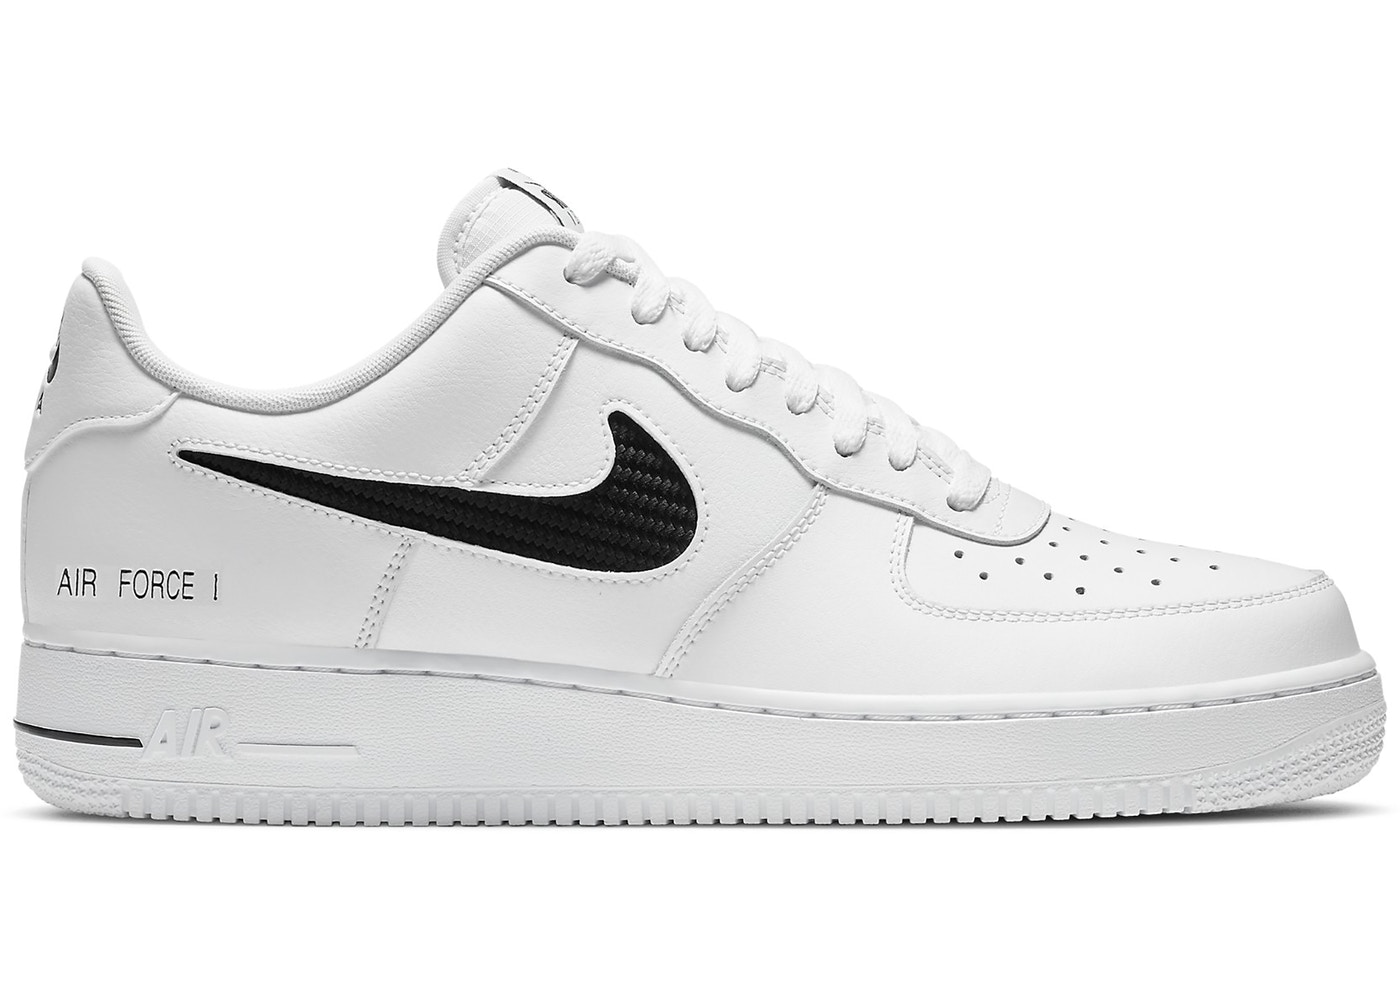 Nike Air Force 1 Low Cut Out Swoosh White Black